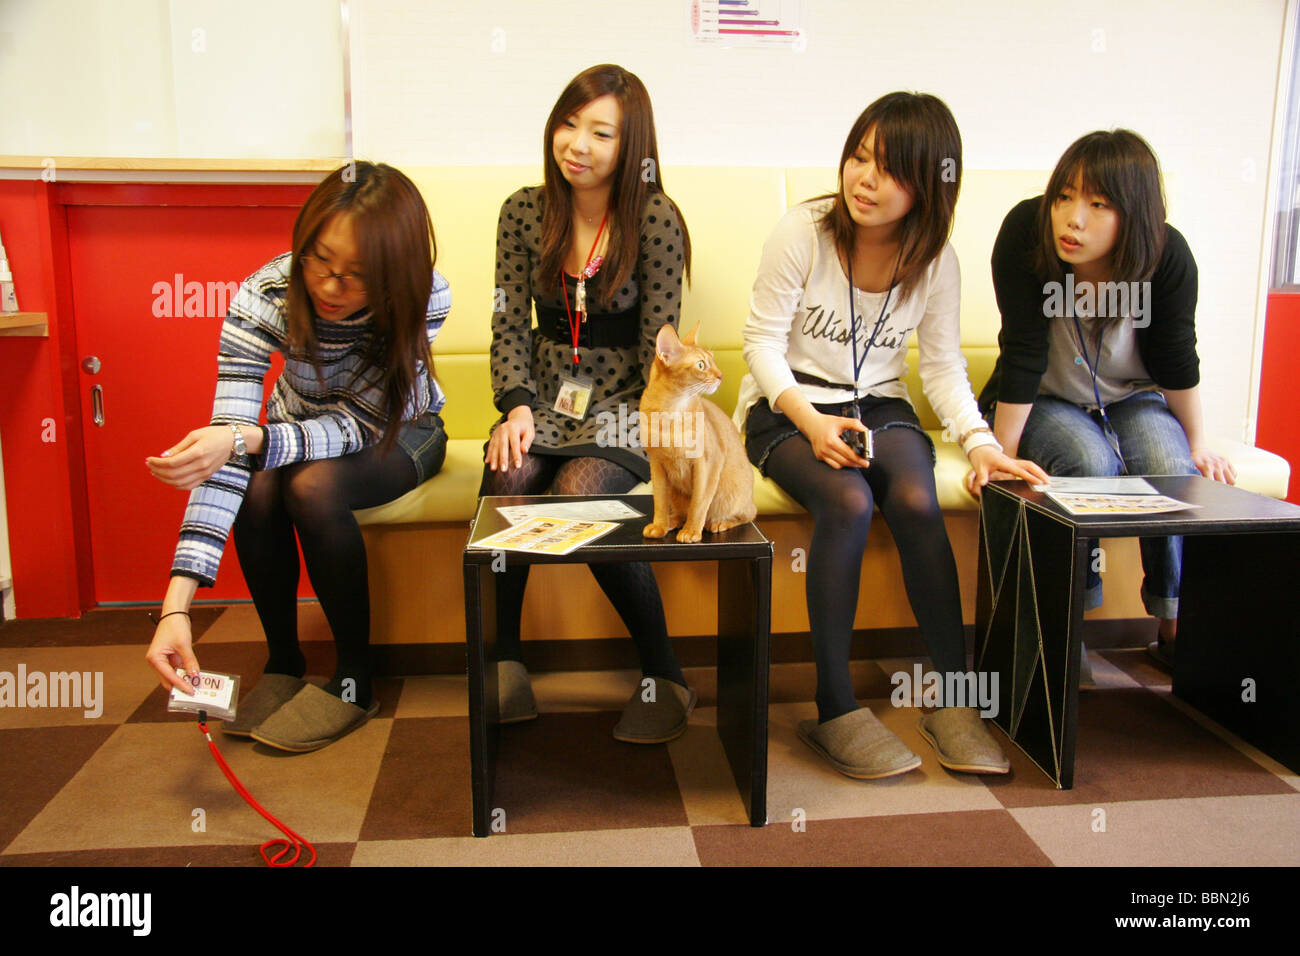 Japanese Women At A Cat Cafe In Tokyo Japan Stock Photo Alamy